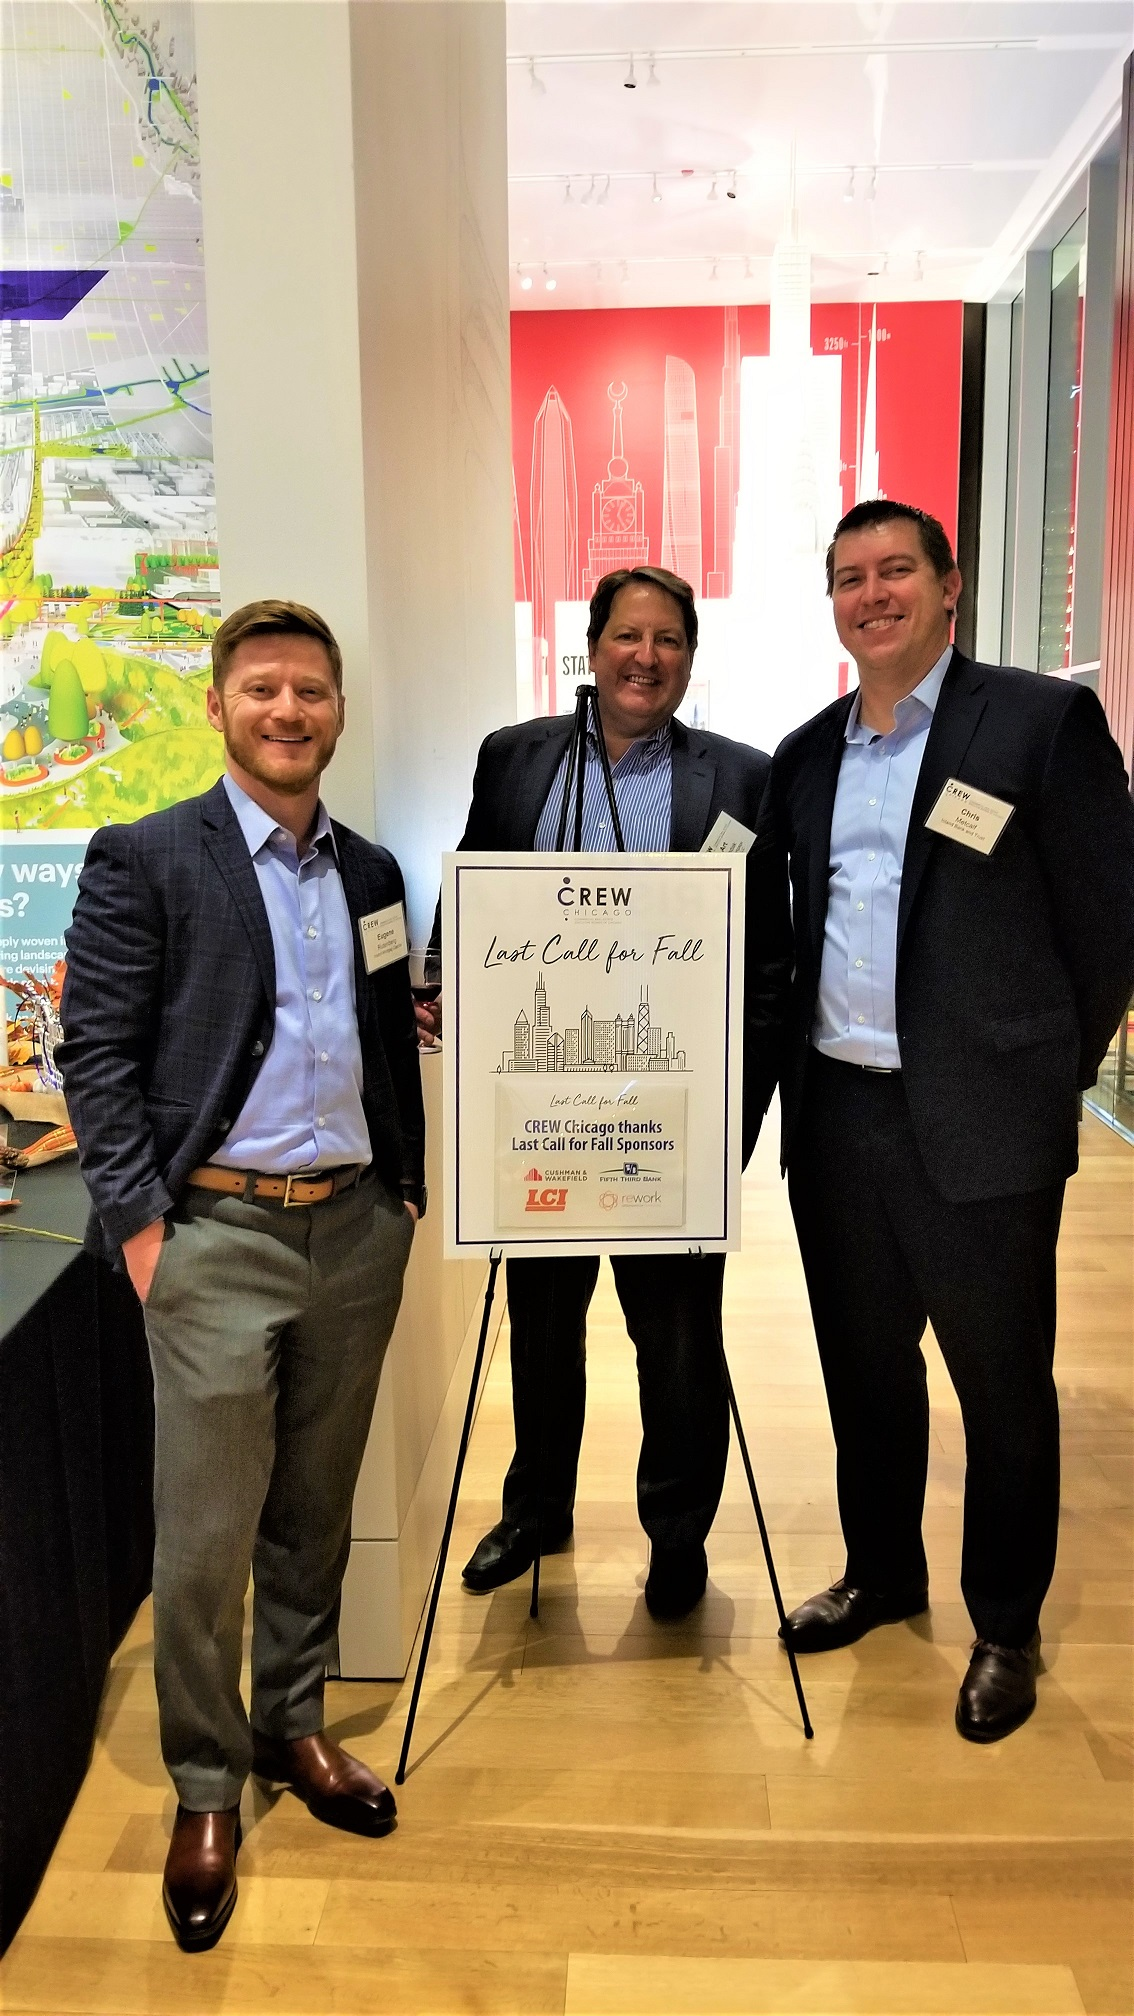 Art Rendak and Eugene Rutenberg networked at CREW Chicago's 2019 Last Call for Fall event, held at the Chicago Architectural Center. Pictured also, is Chris Metcalf of Inland Bank.